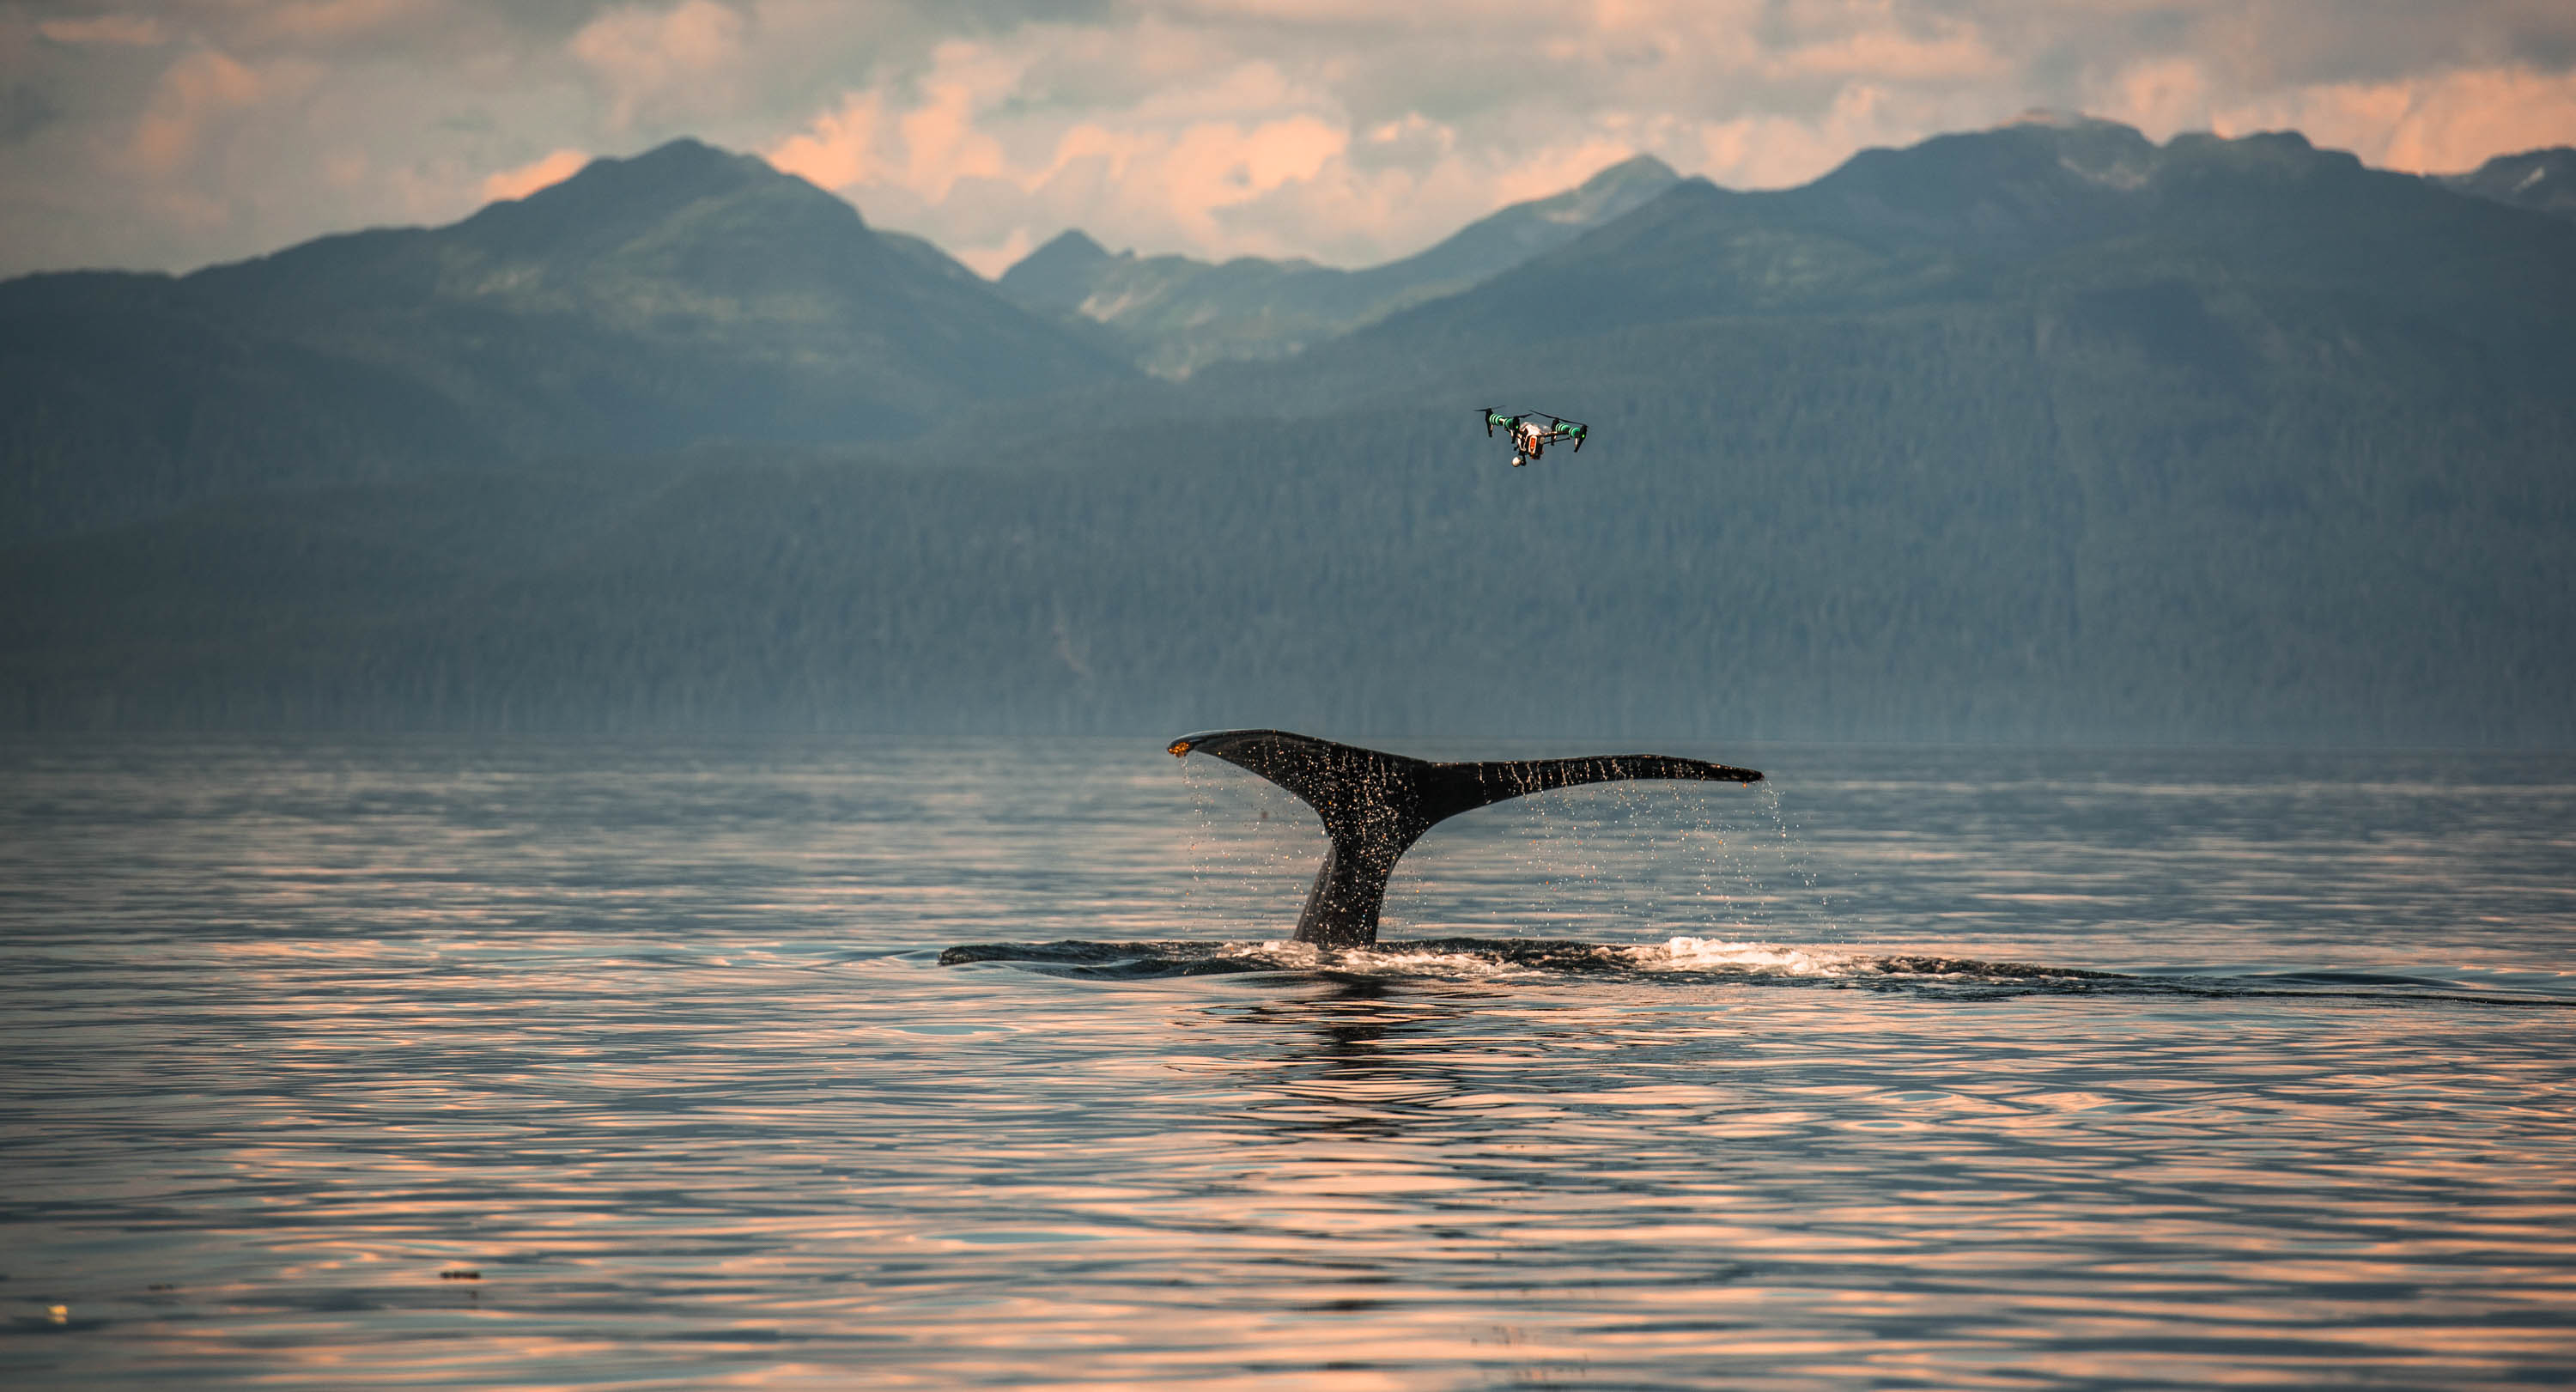 Intel partners with Parley for the Oceans and Oceans Alliance on SnotBot to provide emerging artificial intelligence and drone technologies which analyze whale blow to indicate the health of our oceans.